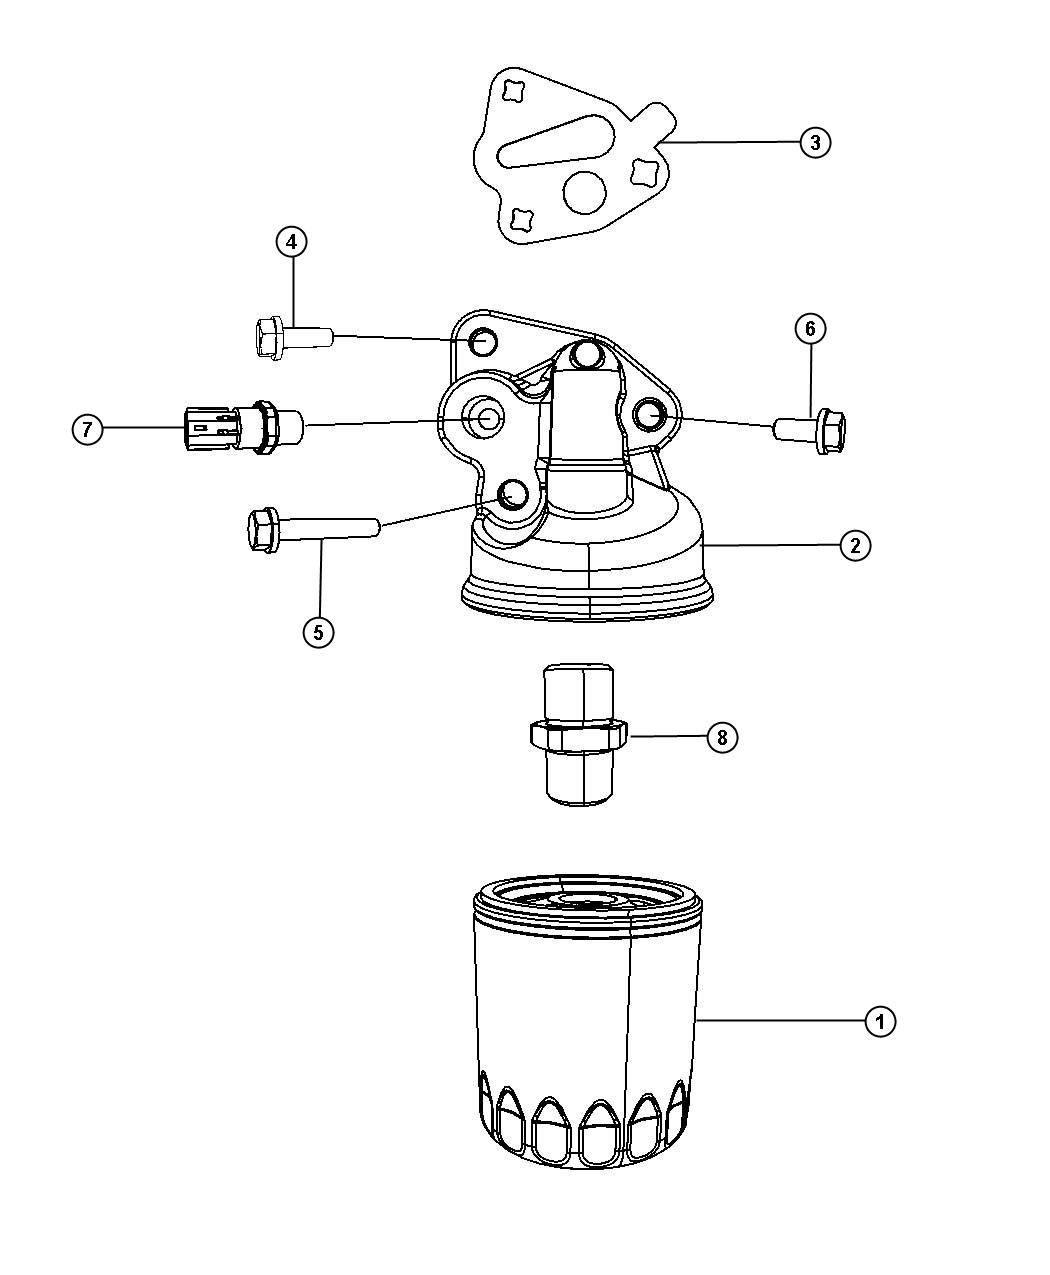 Chrysler Pacifica Engine Oil Filter Adapter And Splash Guard